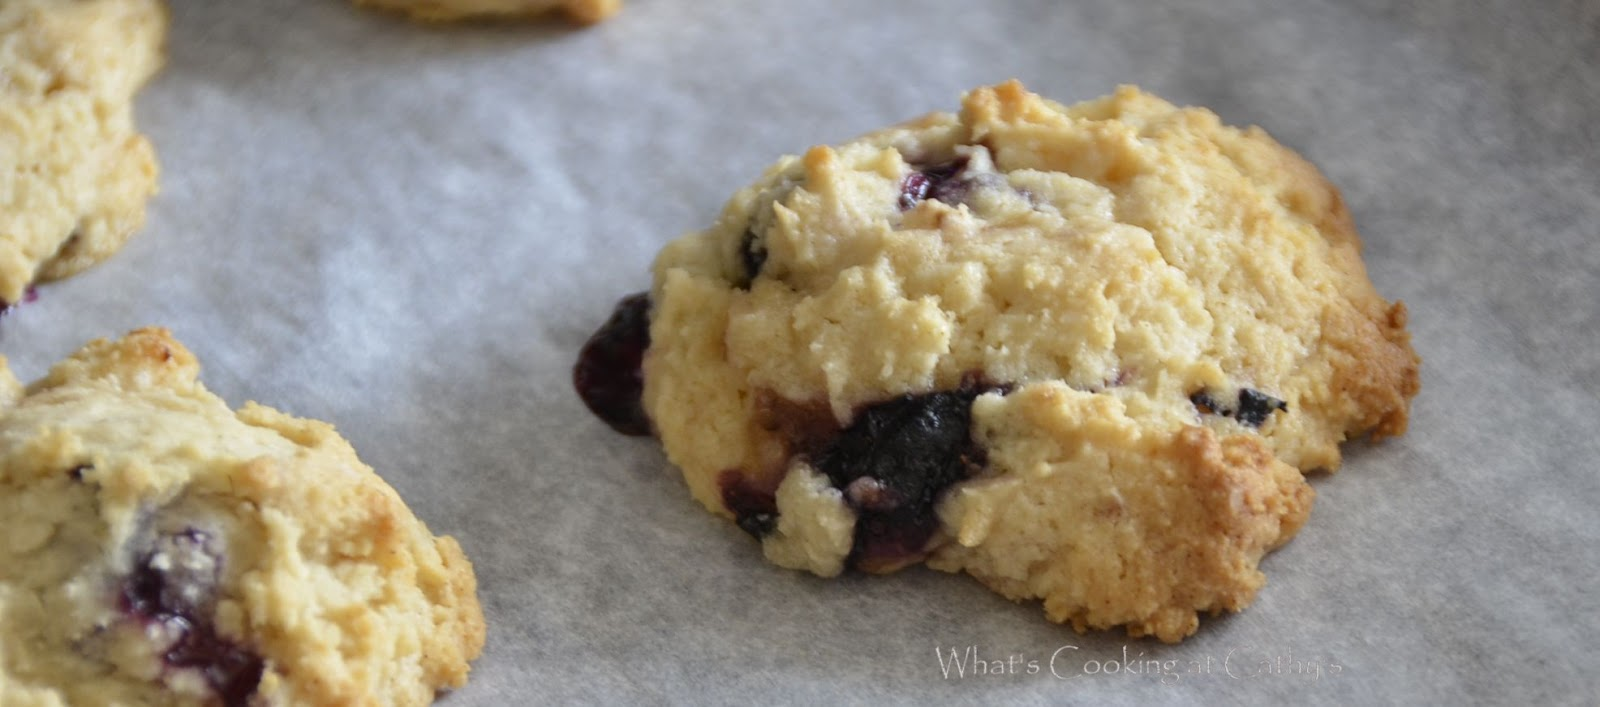 What's Cooking At Cathy's?: Lemon Blueberry Cookies